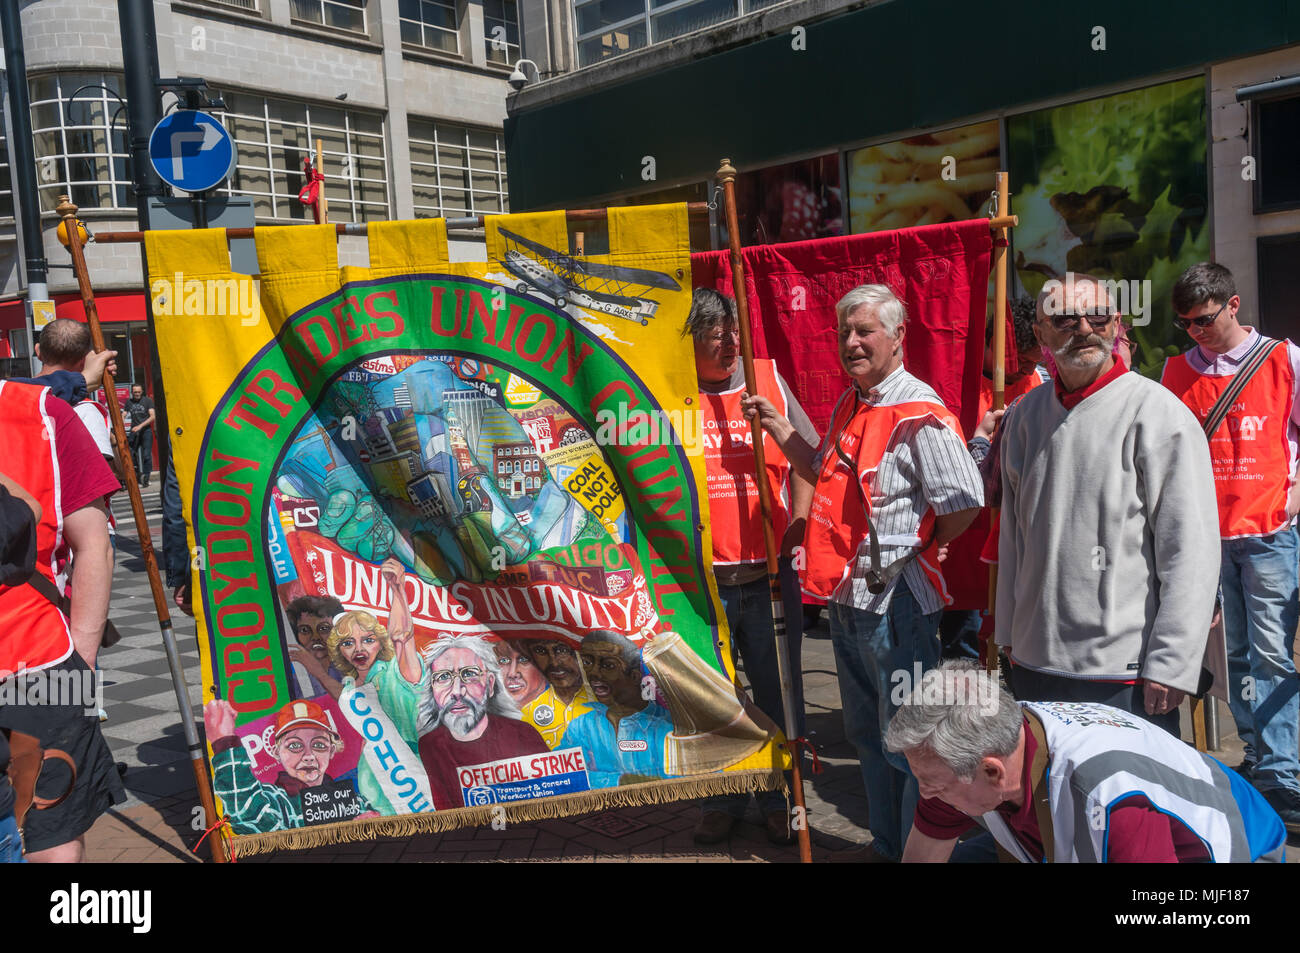 London, UK. 5th March 2018. Trade unionists and other socialists meet in Croydon to march through the city centre to a rally at Ruskin House in celebration of May Day, International Workers Day which is celebrated internationally on May 1st.  Unfortunately May Day is not a Bank Holiday in the UK. The marchers were lead through the main shopping street by a piper and drummer in full Scots dress, attracting the attention of shoppers and others on the busy street. I left the march before it reached Ruskin House where there was to be a rally with speakers including Ted Knight. Peter Marshall/Alamy - Stock Image